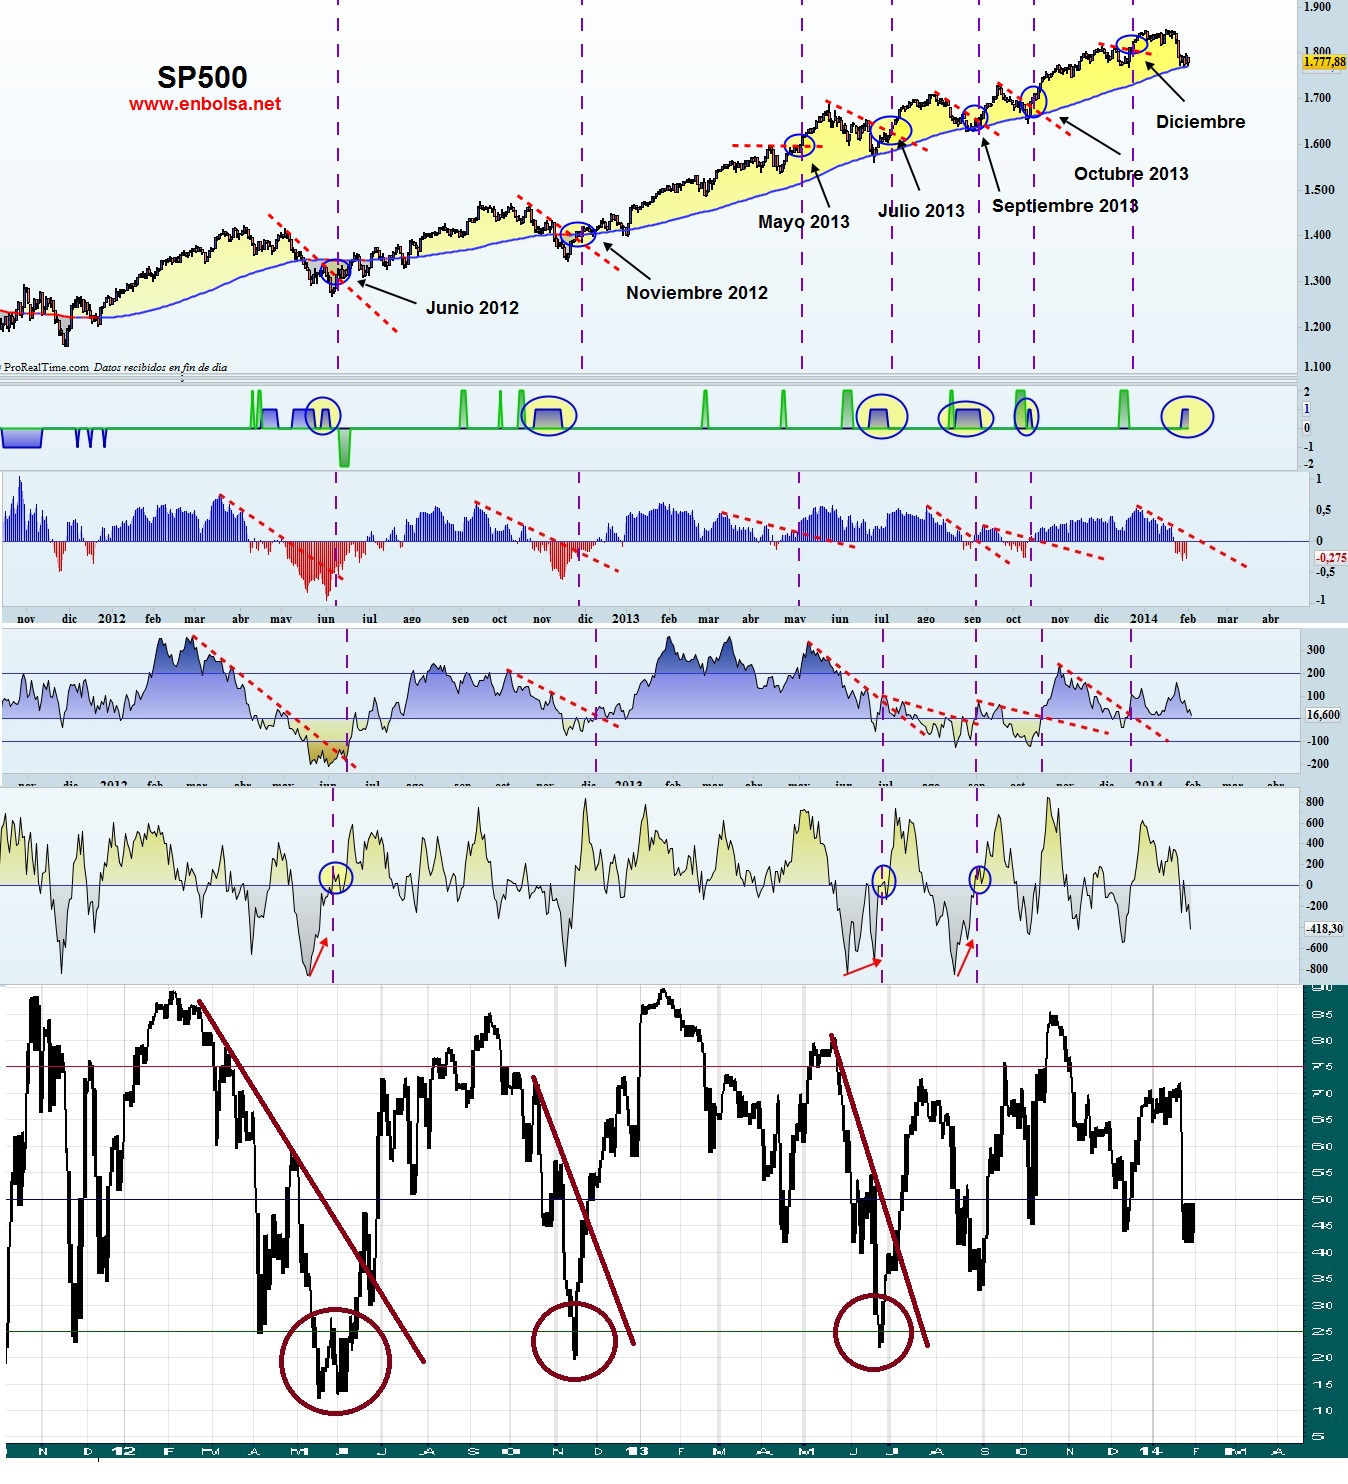 sp500 y el final de la correccion